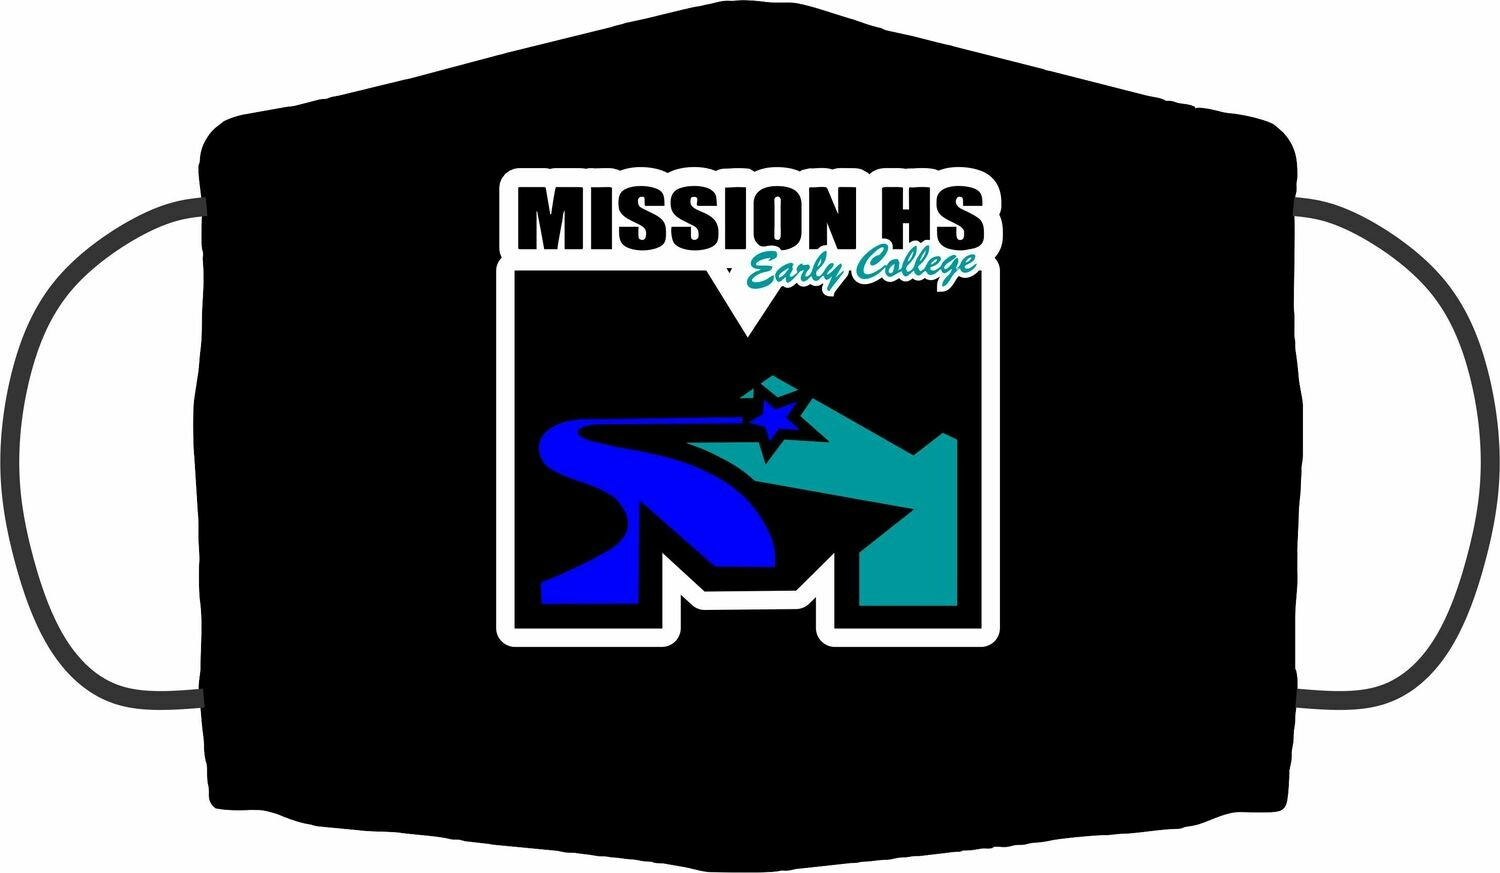 Mission HS Early College Mask